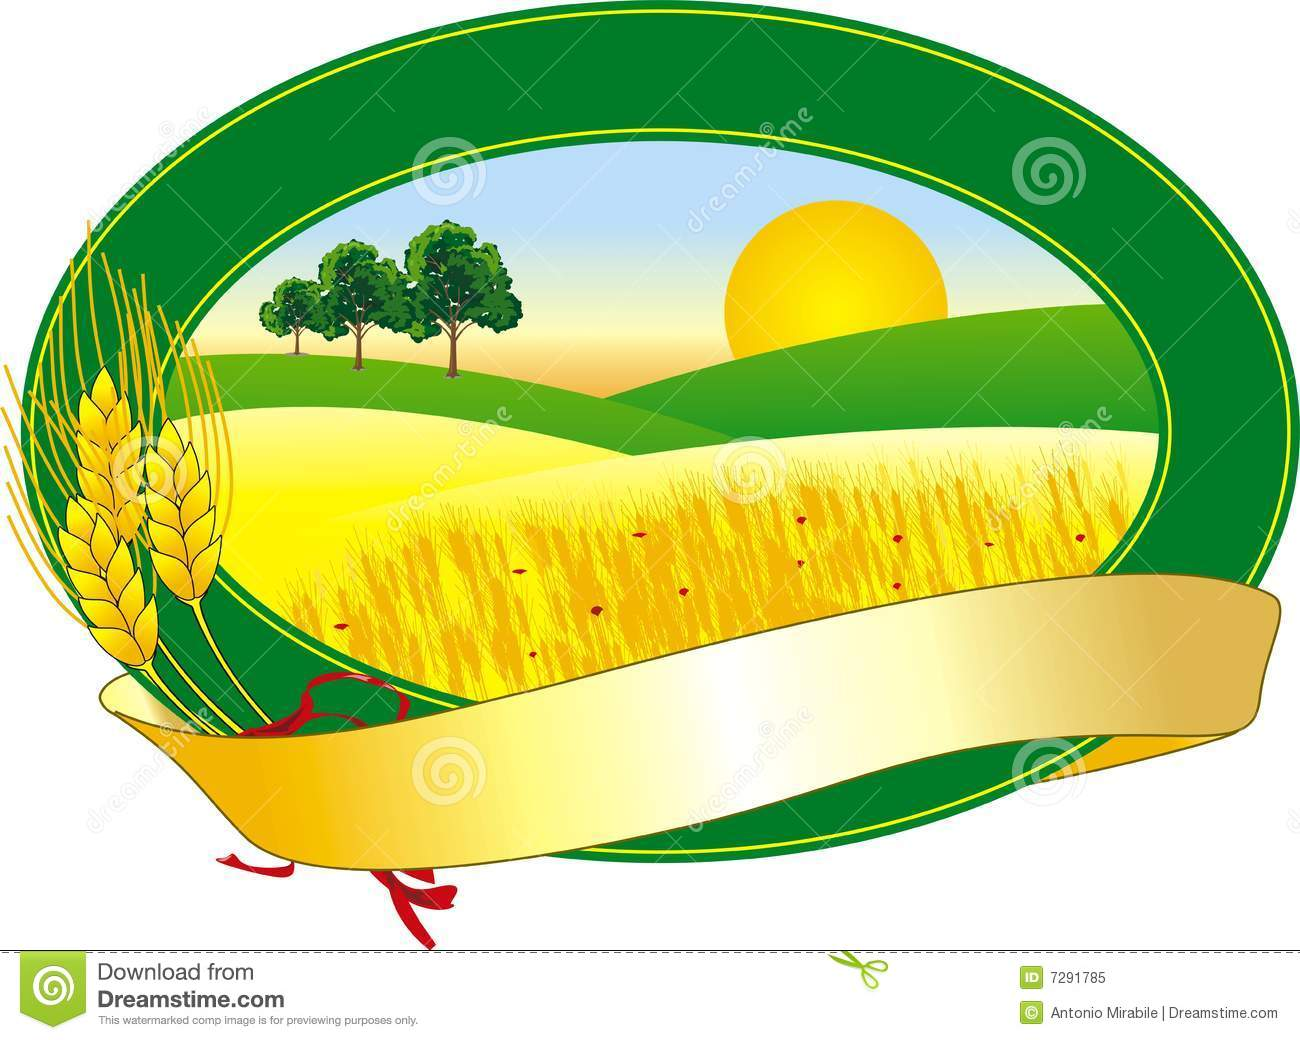 Agriculture Logo Royalty Free Stock Photo - Image: 7291785